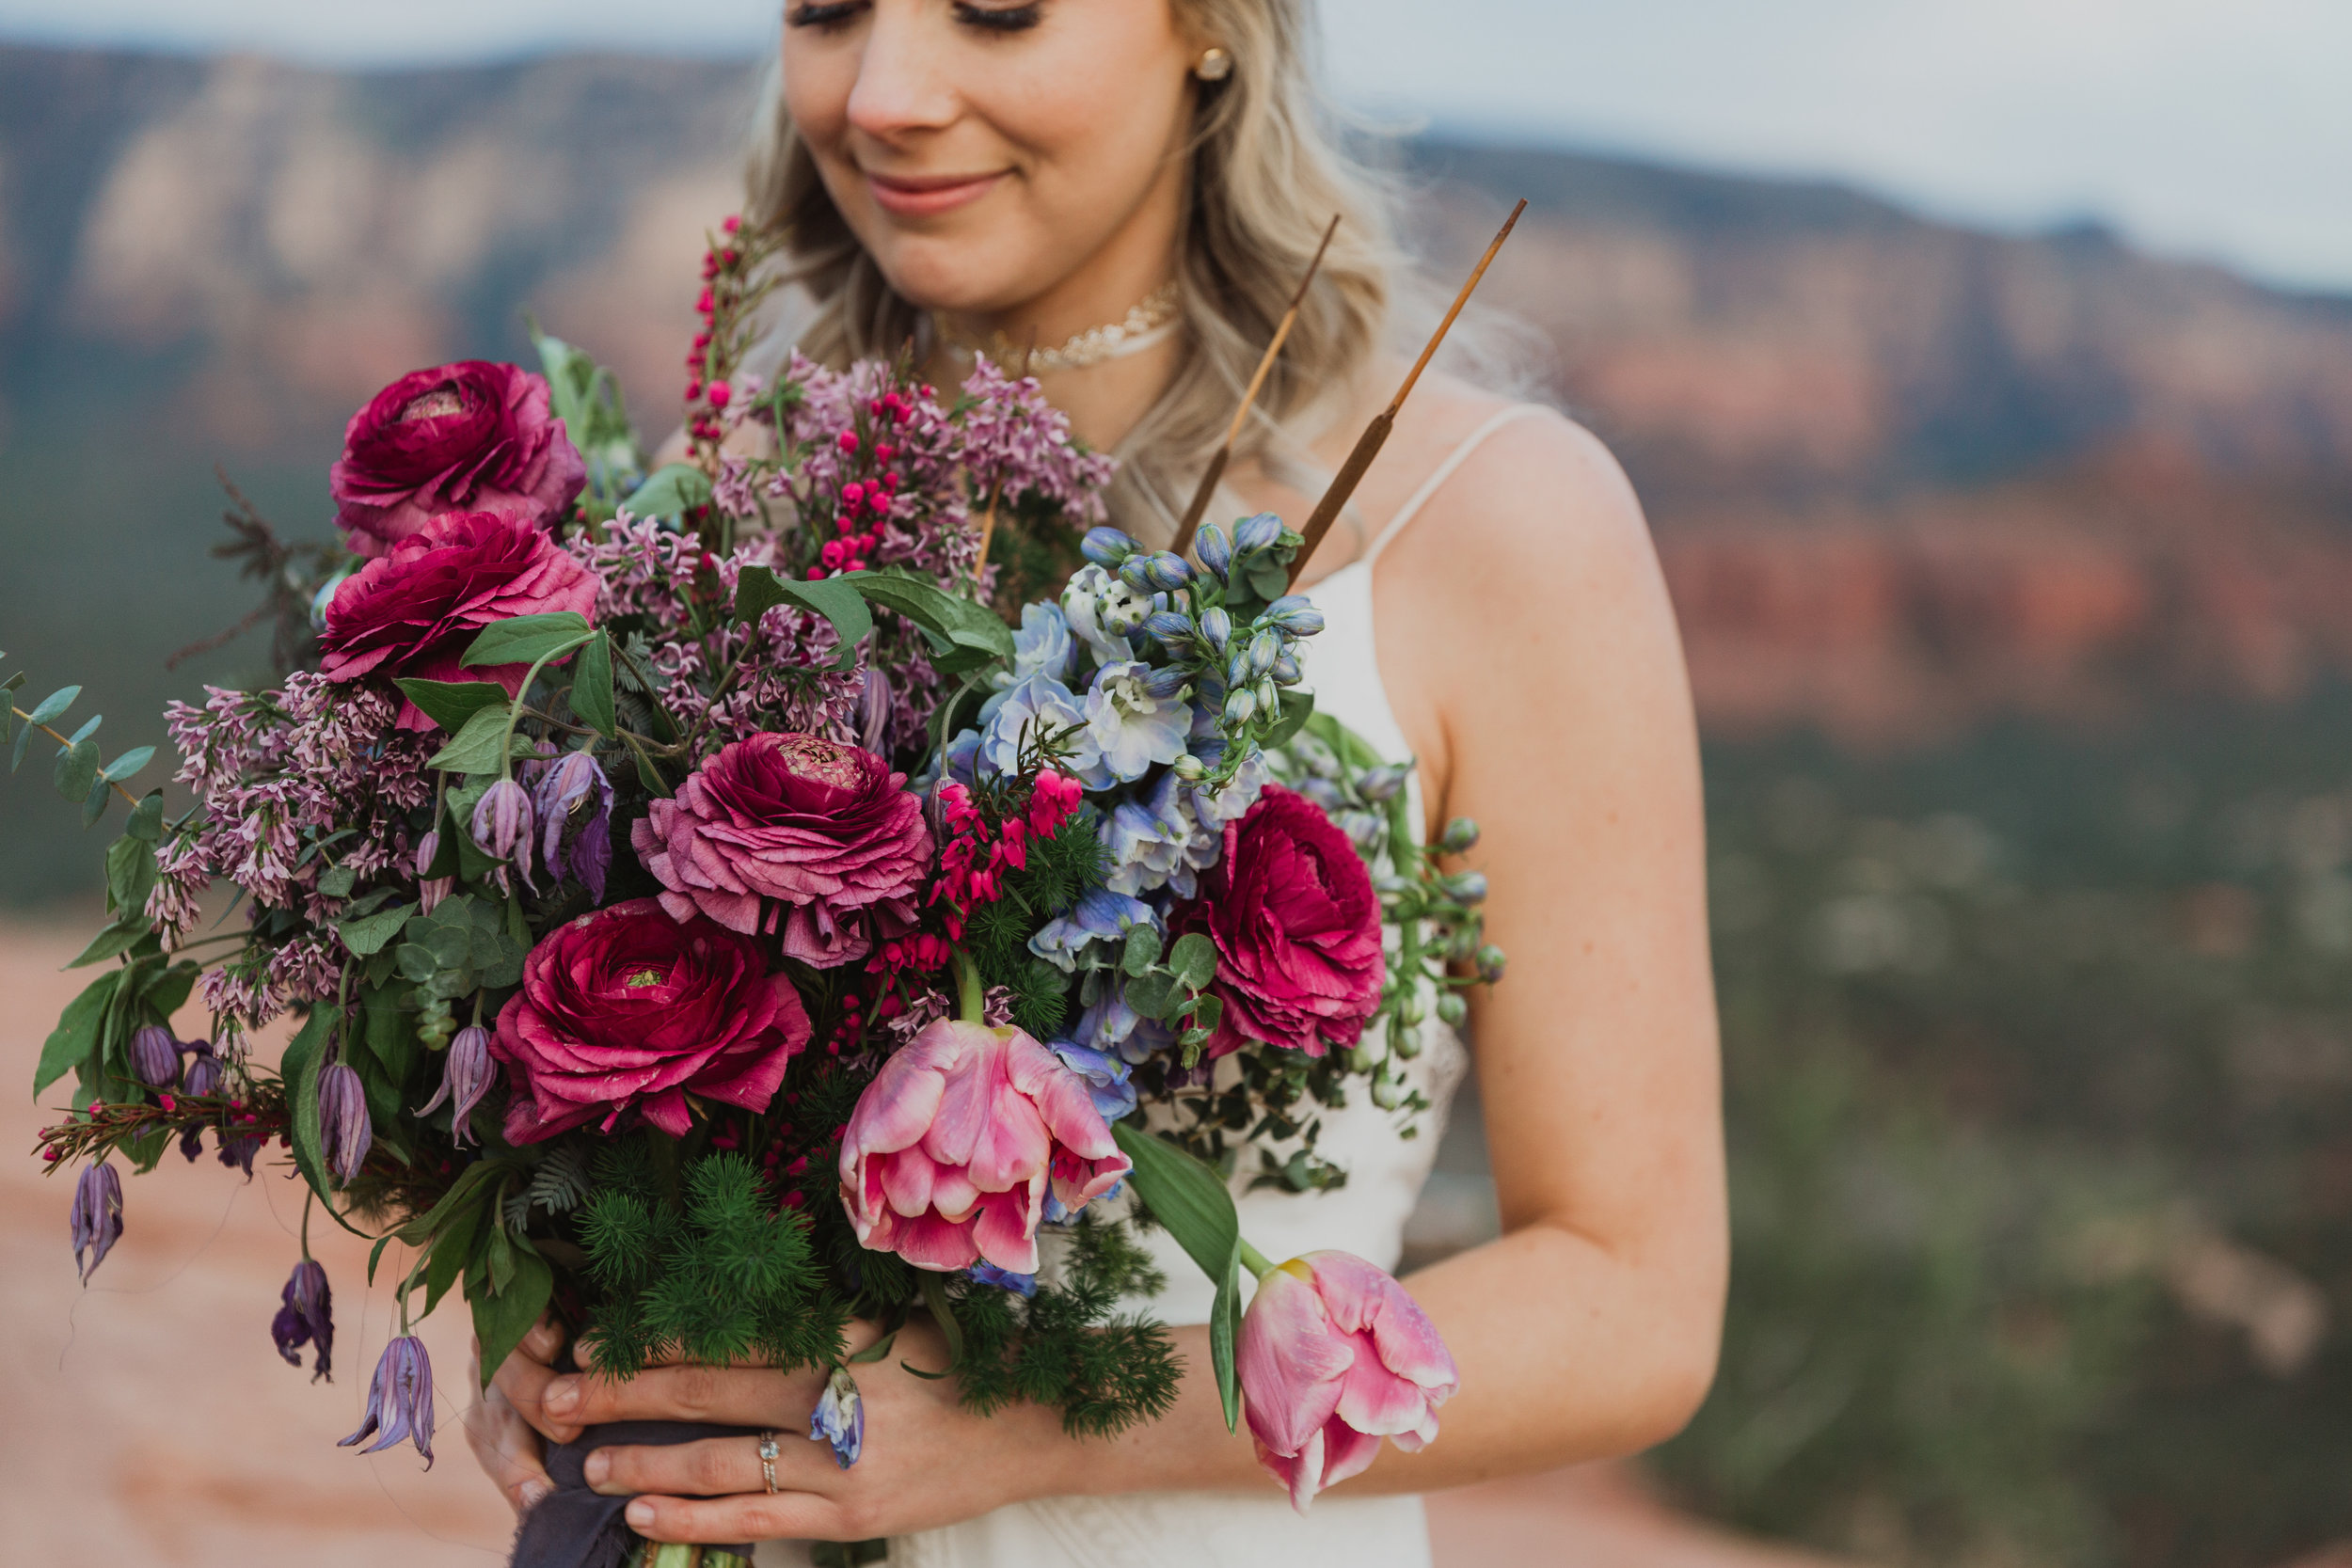 Stars and Moon Inspired Wedding in the Red Rocks of Sedona - Arizona Florist serving Phoenix scottsdale Mesa chandler Flagstaff Prescott - Bridal Bouquet